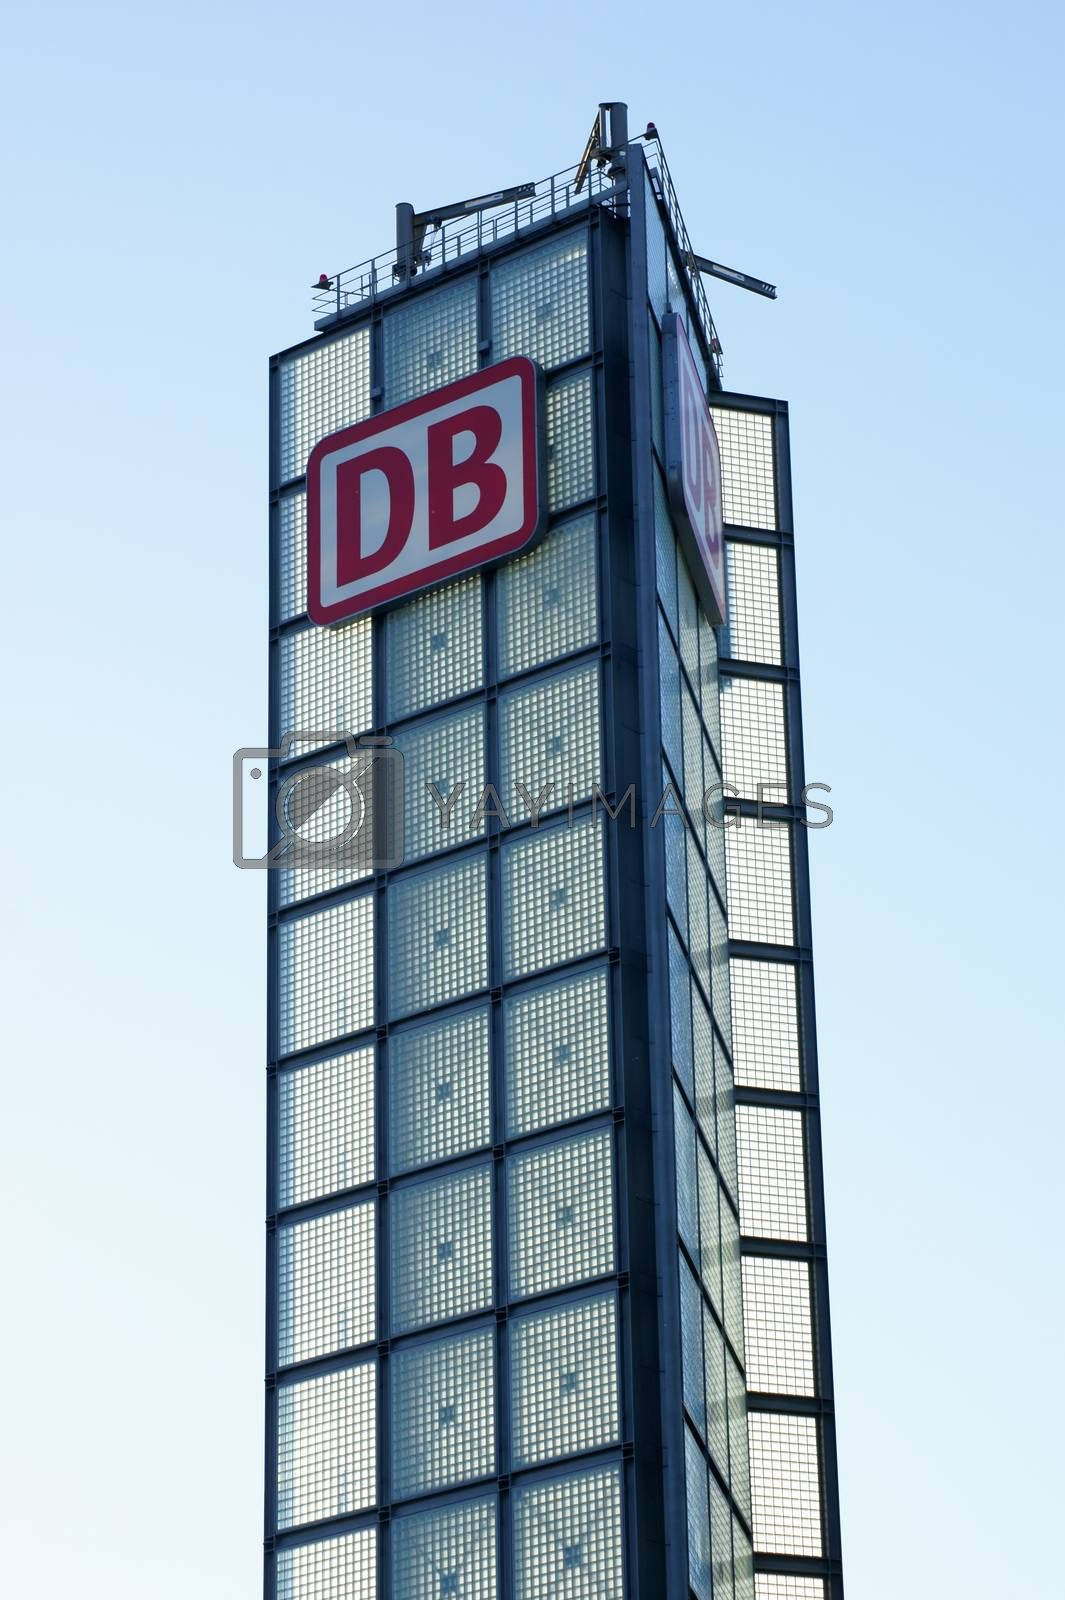 Royalty free image of Tower German Railways by ginton